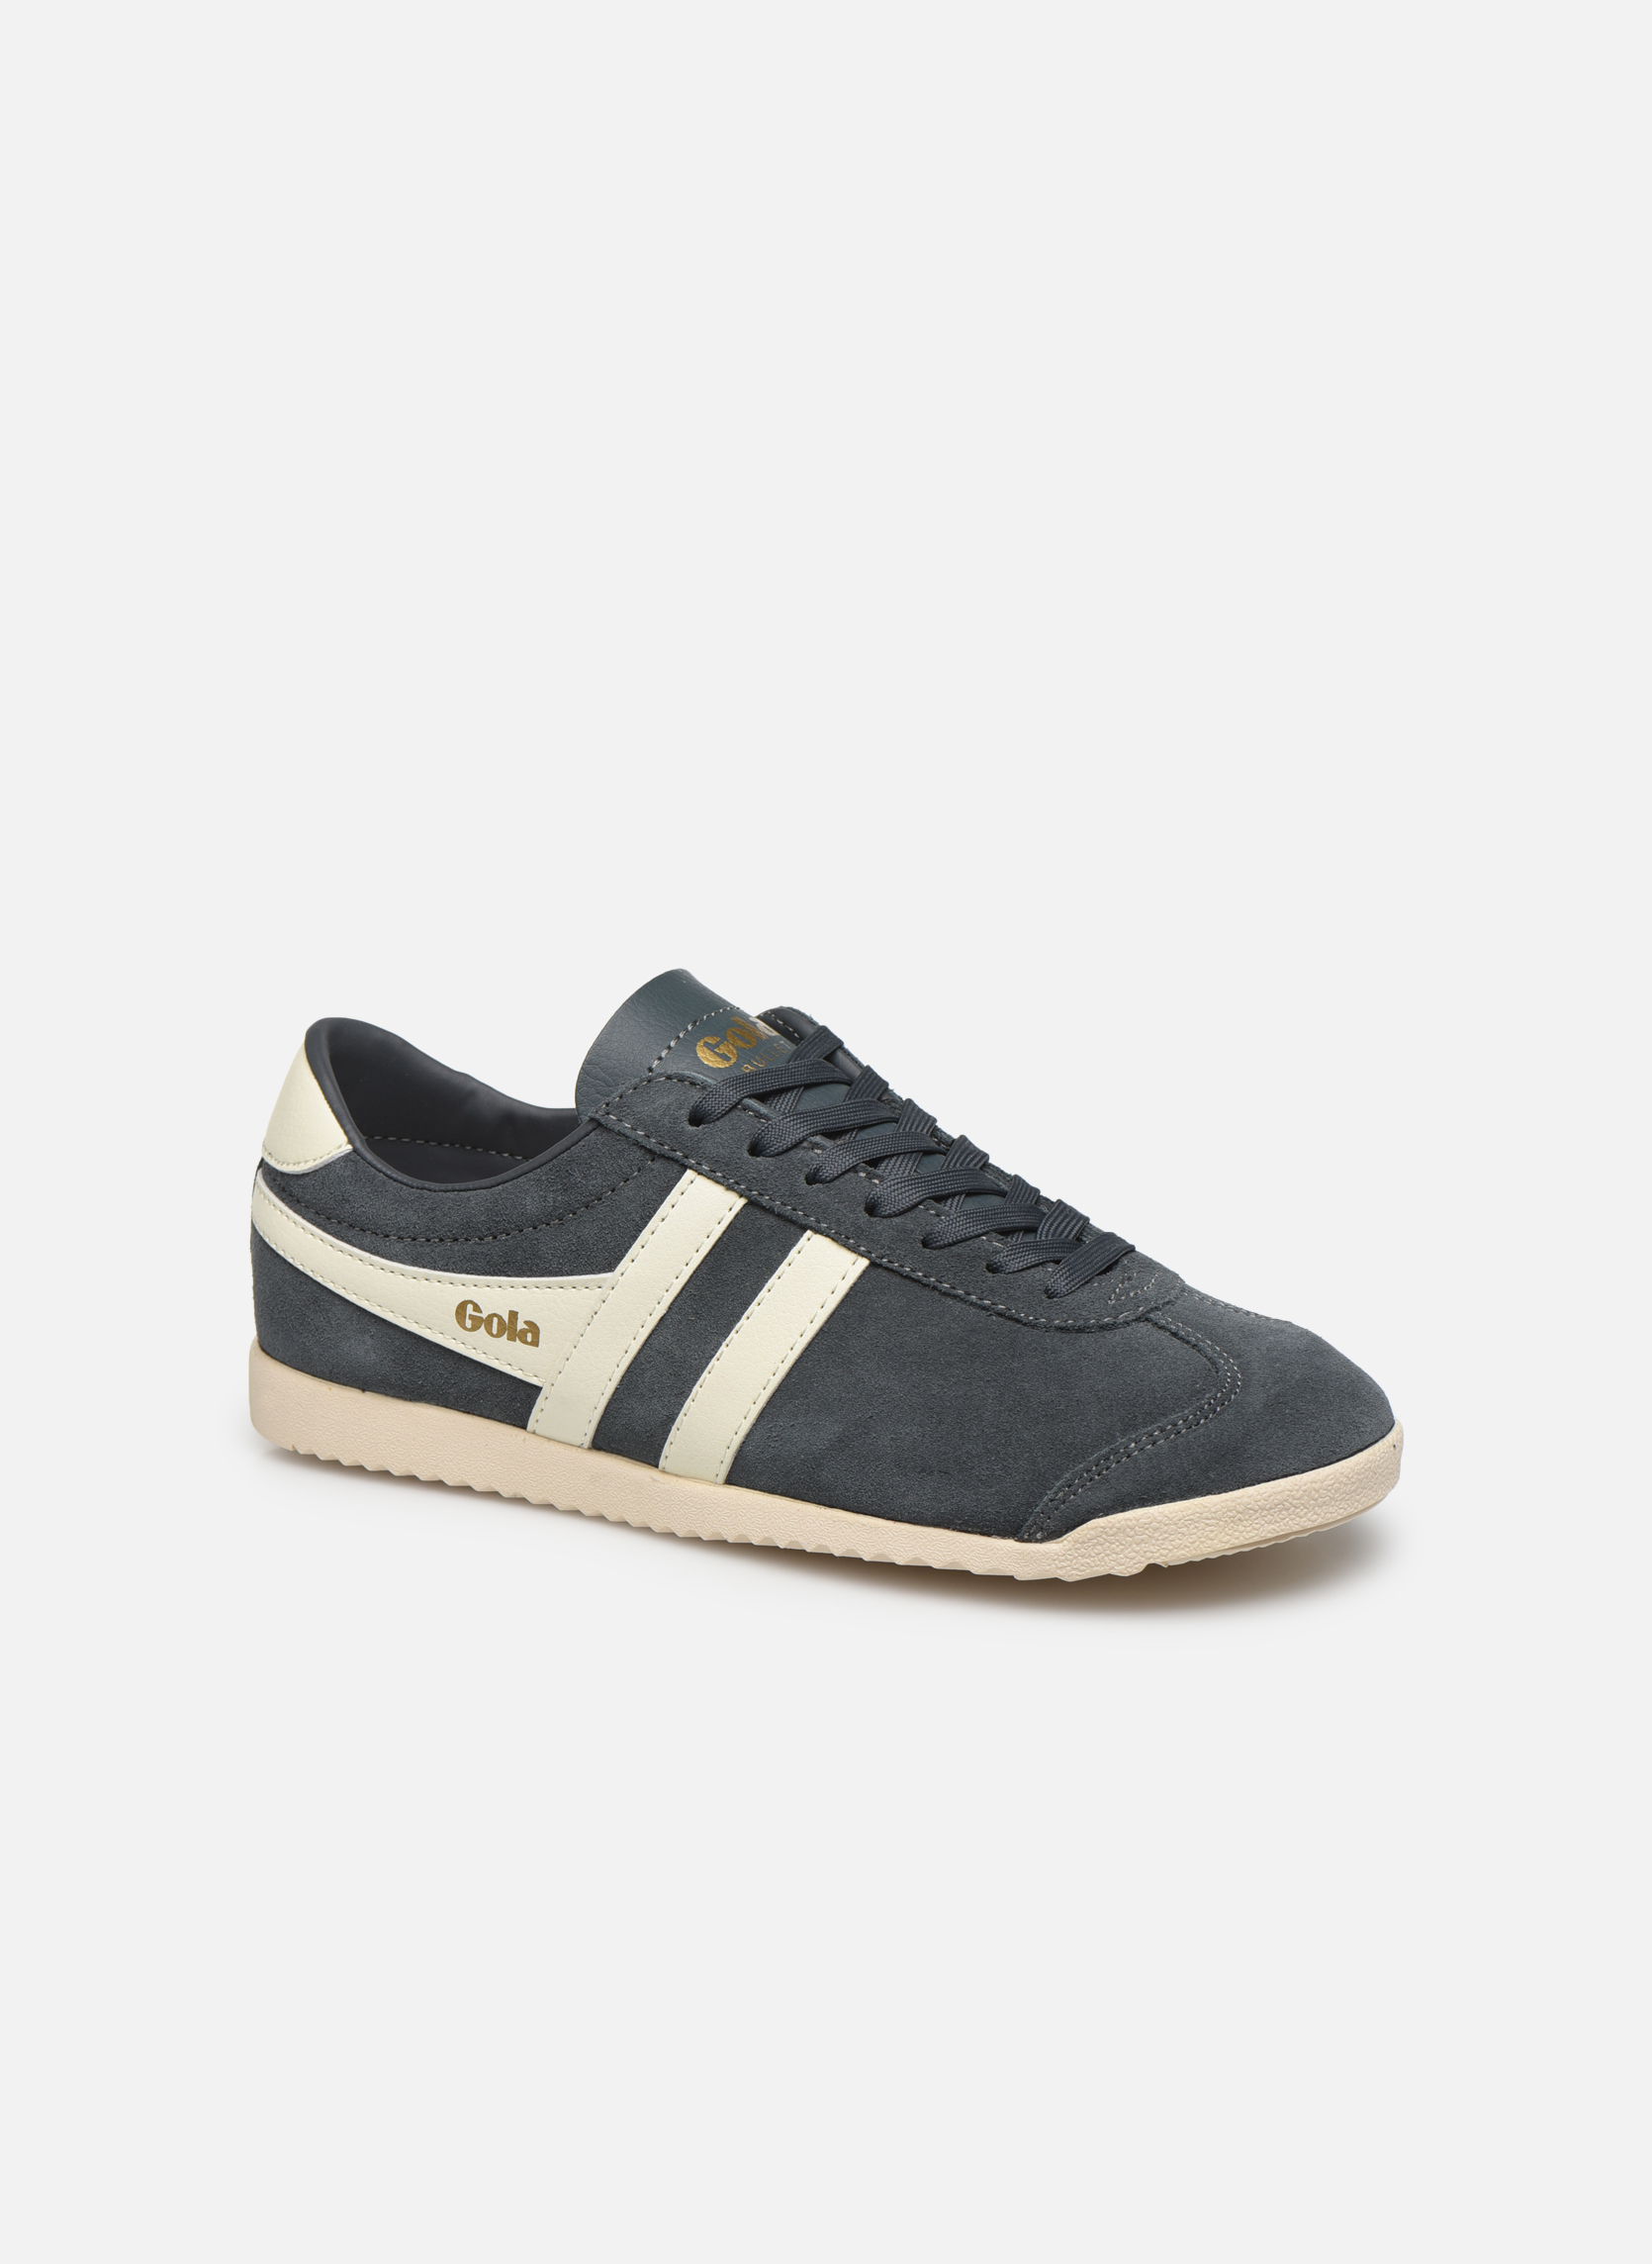 BULLET SUEDE by Gola